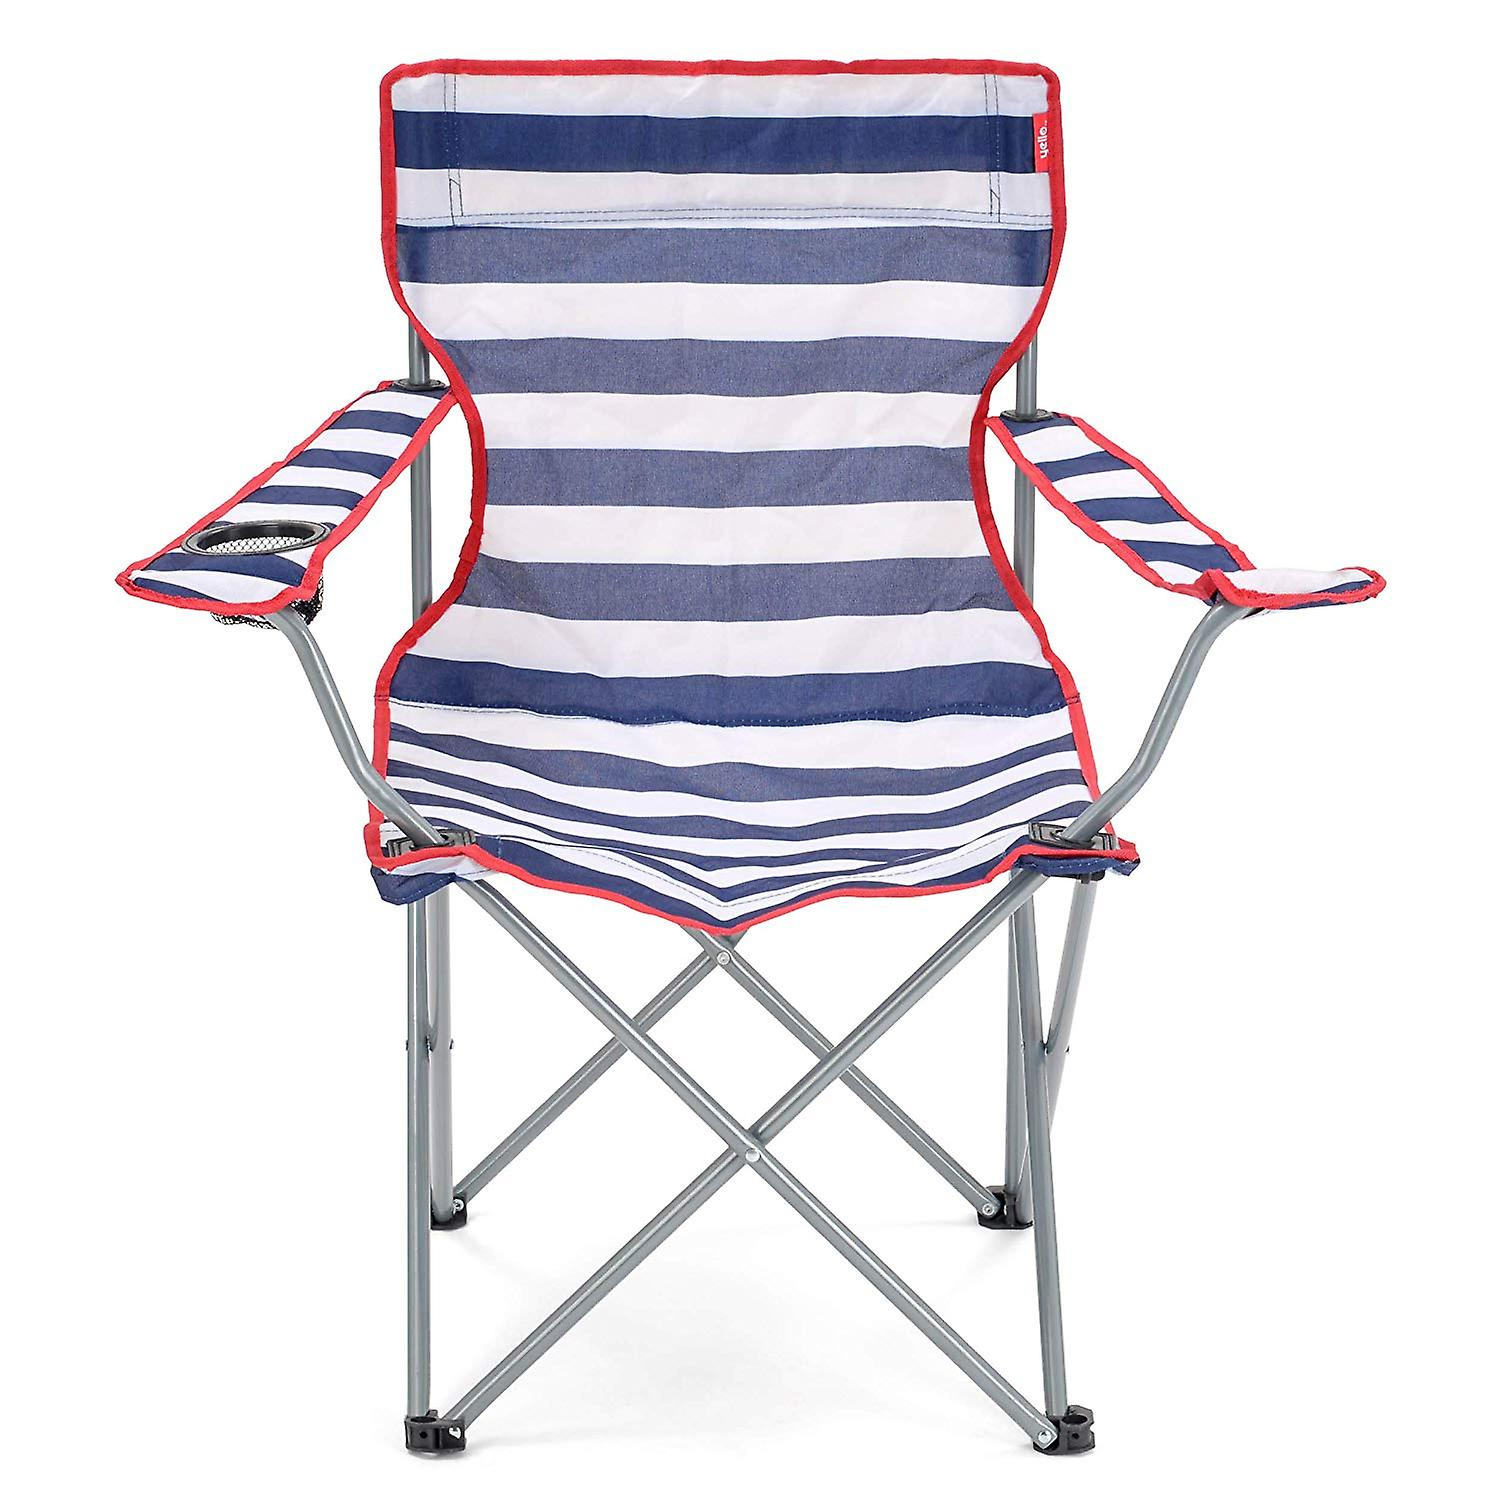 Excellent Yello Folding Beach Chair For Camping Fishing Or Beach Striped Blue White Caraccident5 Cool Chair Designs And Ideas Caraccident5Info